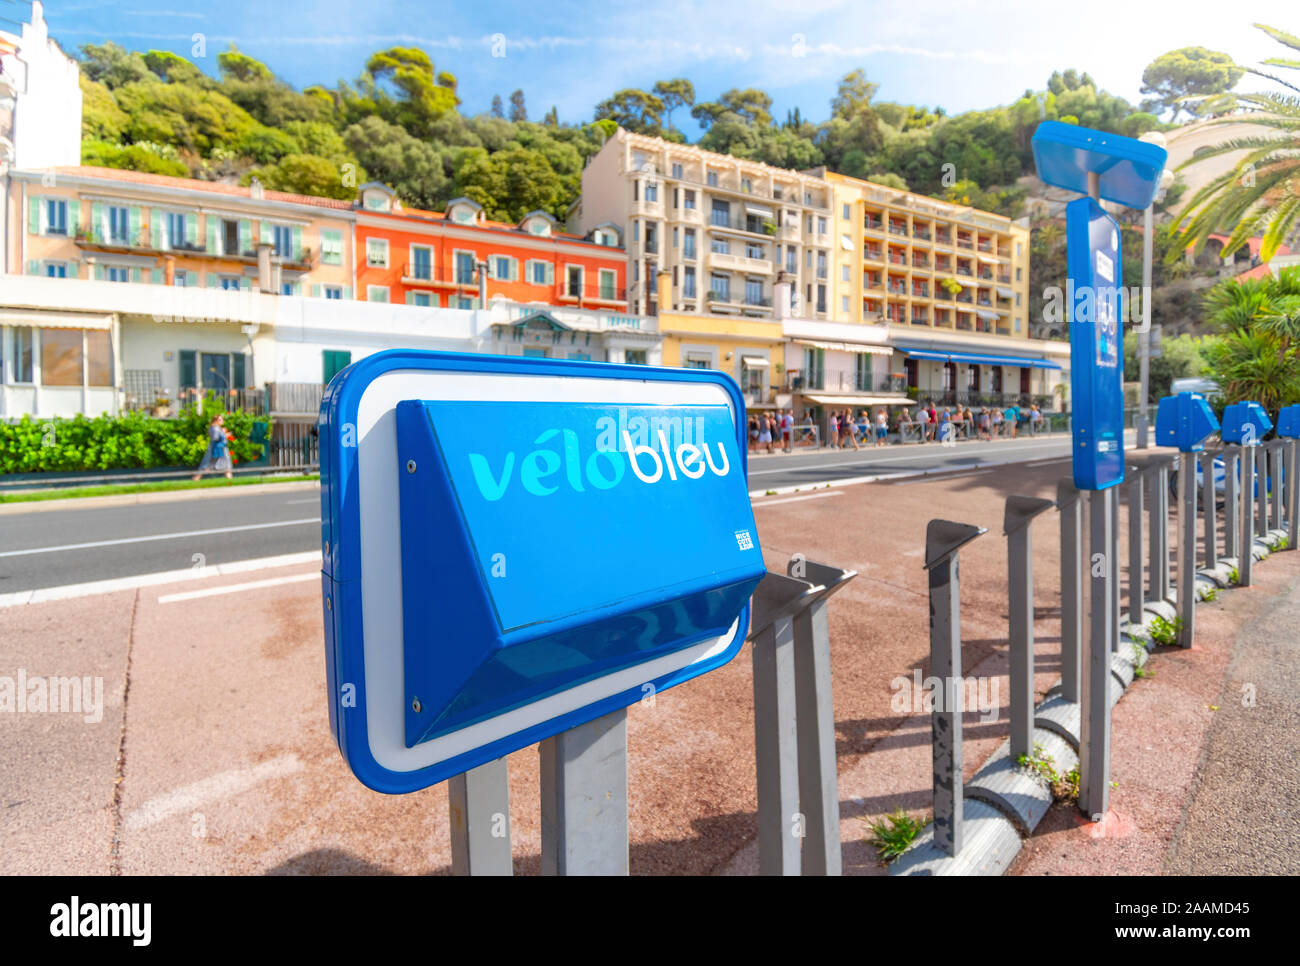 A Velo Bleu bicycle share stand sits empty on the Promenade des Anglais in the Mediterranean city of Nice, France. Stock Photo